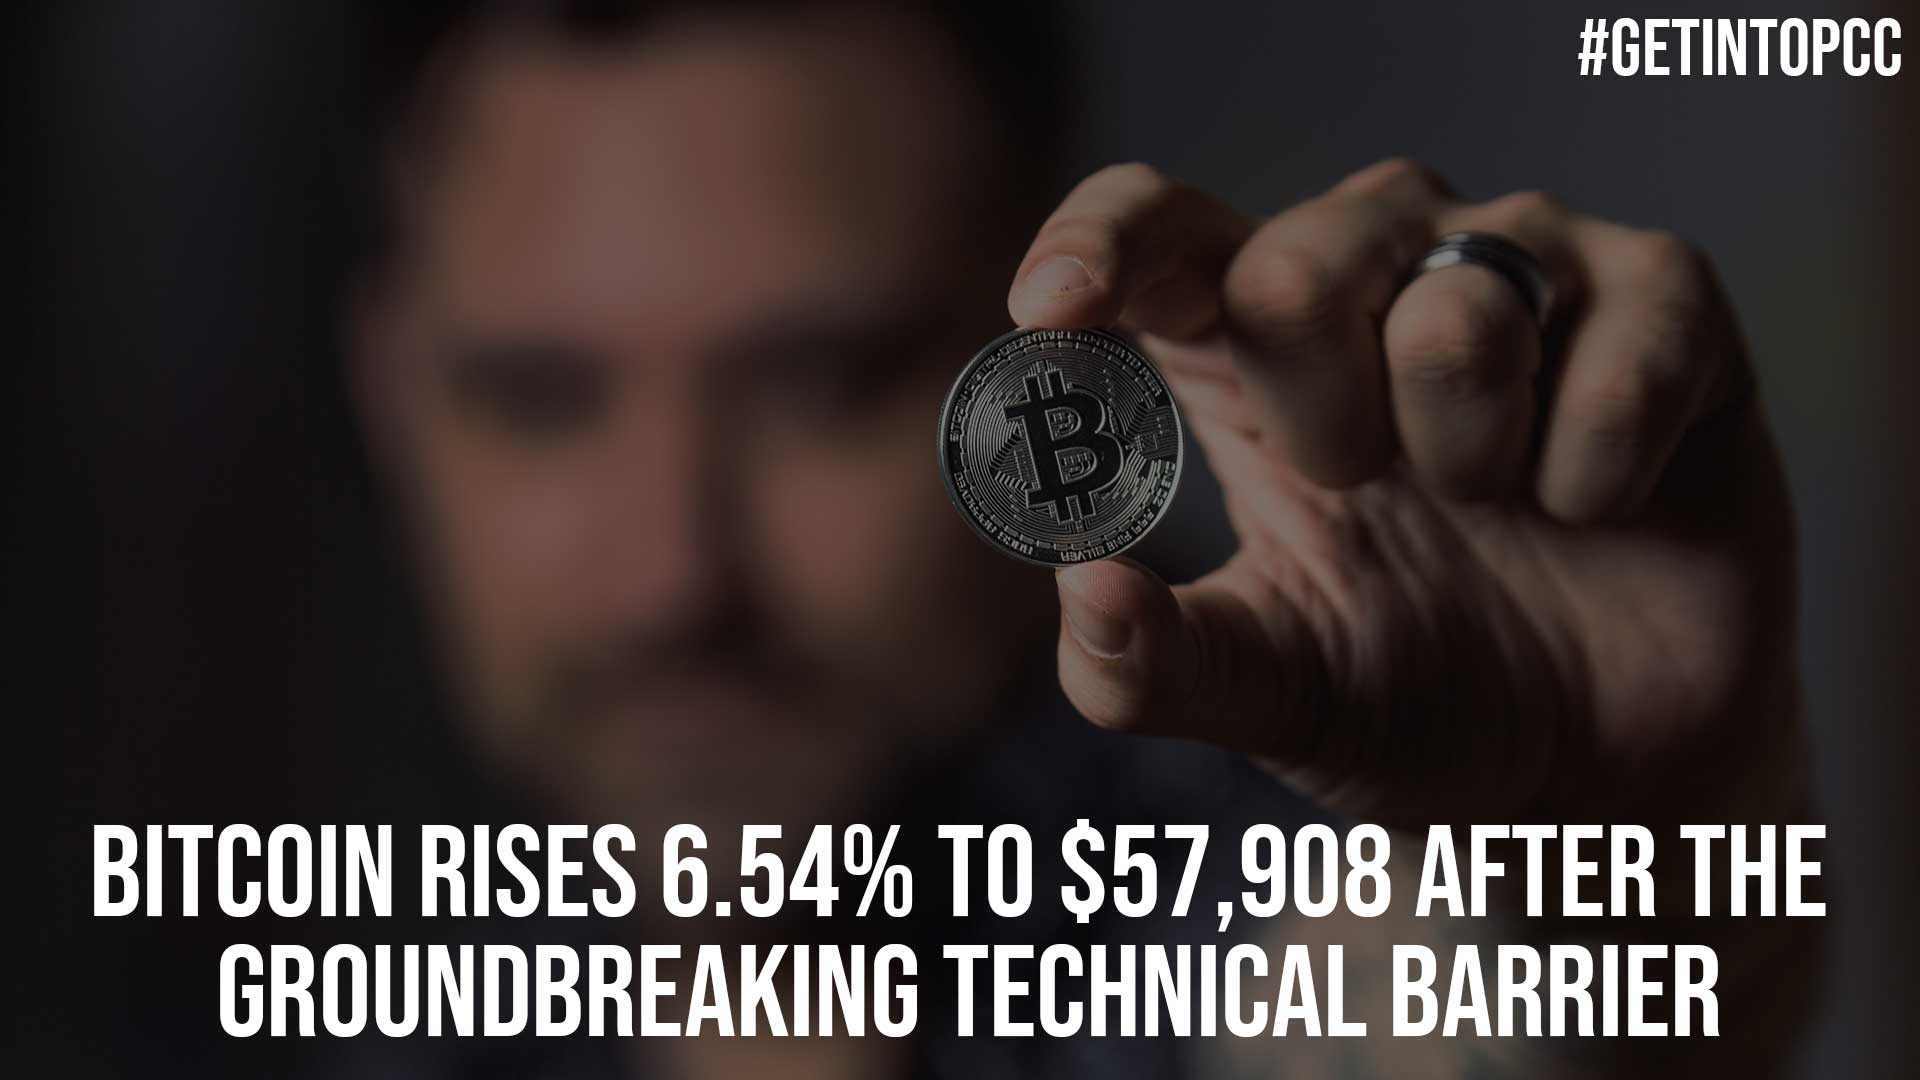 Bitcoin Rises 6.54 to 57908 After The Groundbreaking Technical Barrier